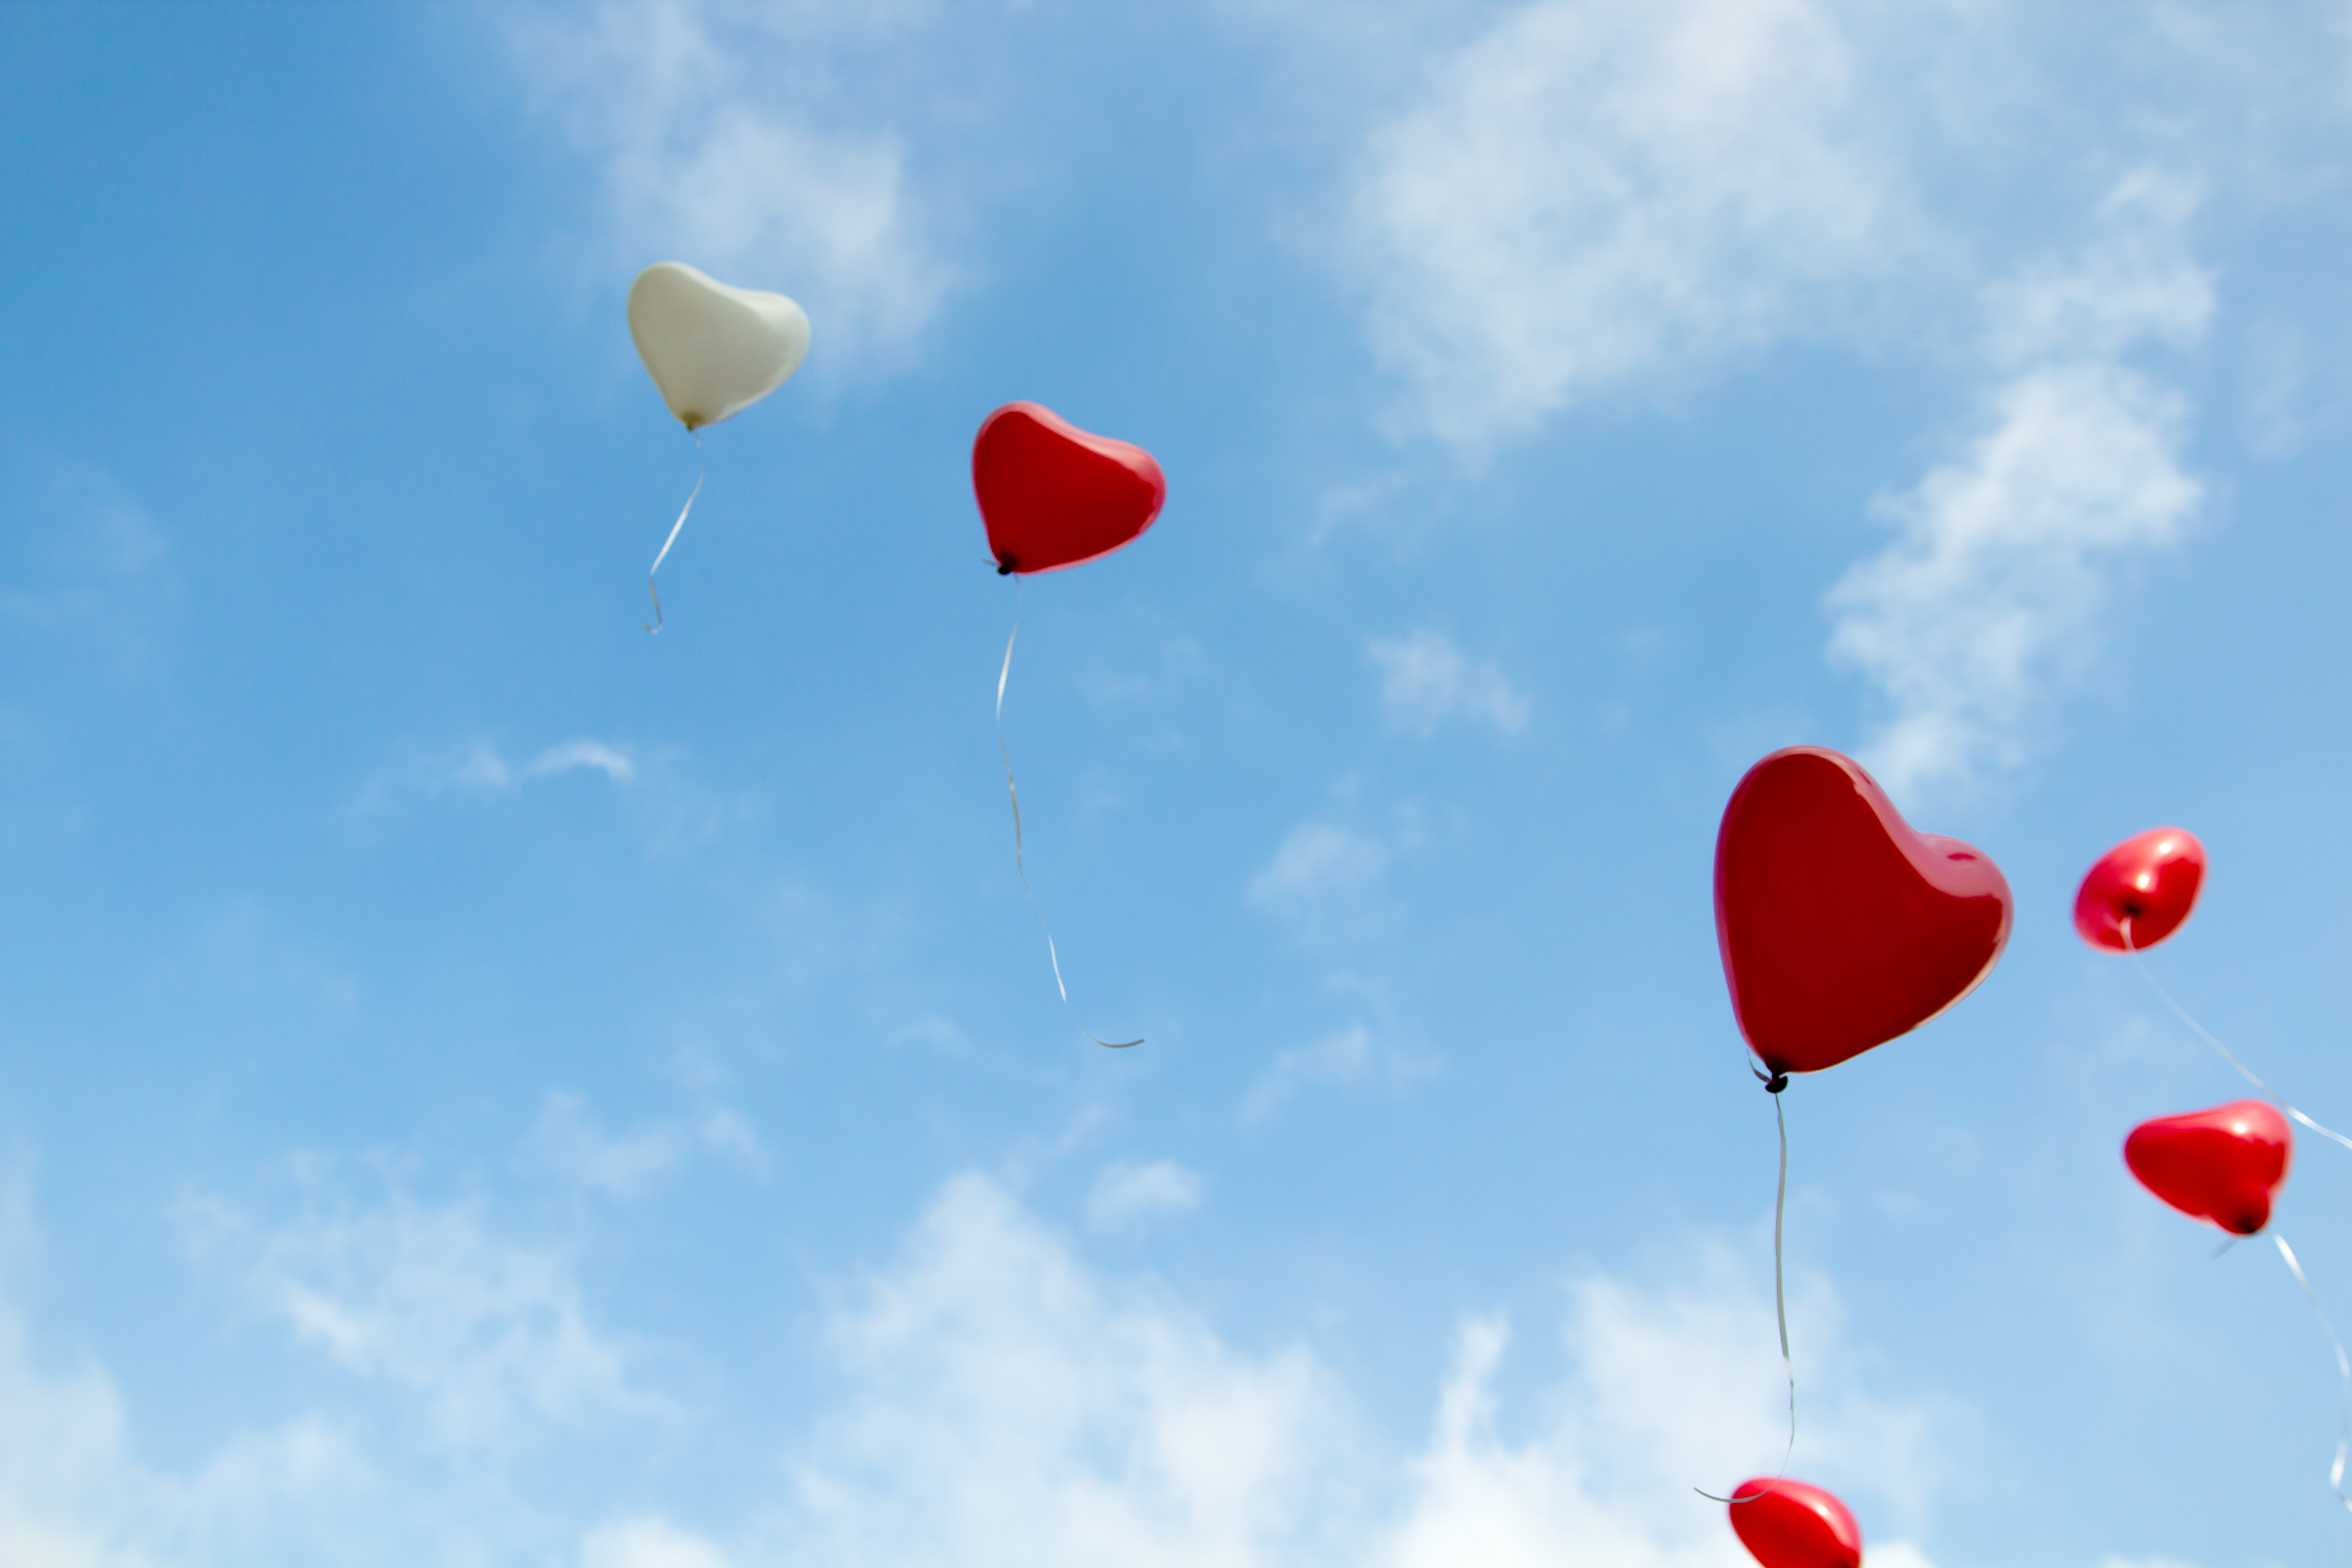 This shot was taken on my brothers wedding. After ceremony everyone got a heart shaped balloon which then were released into the sky of a nice sunny day.